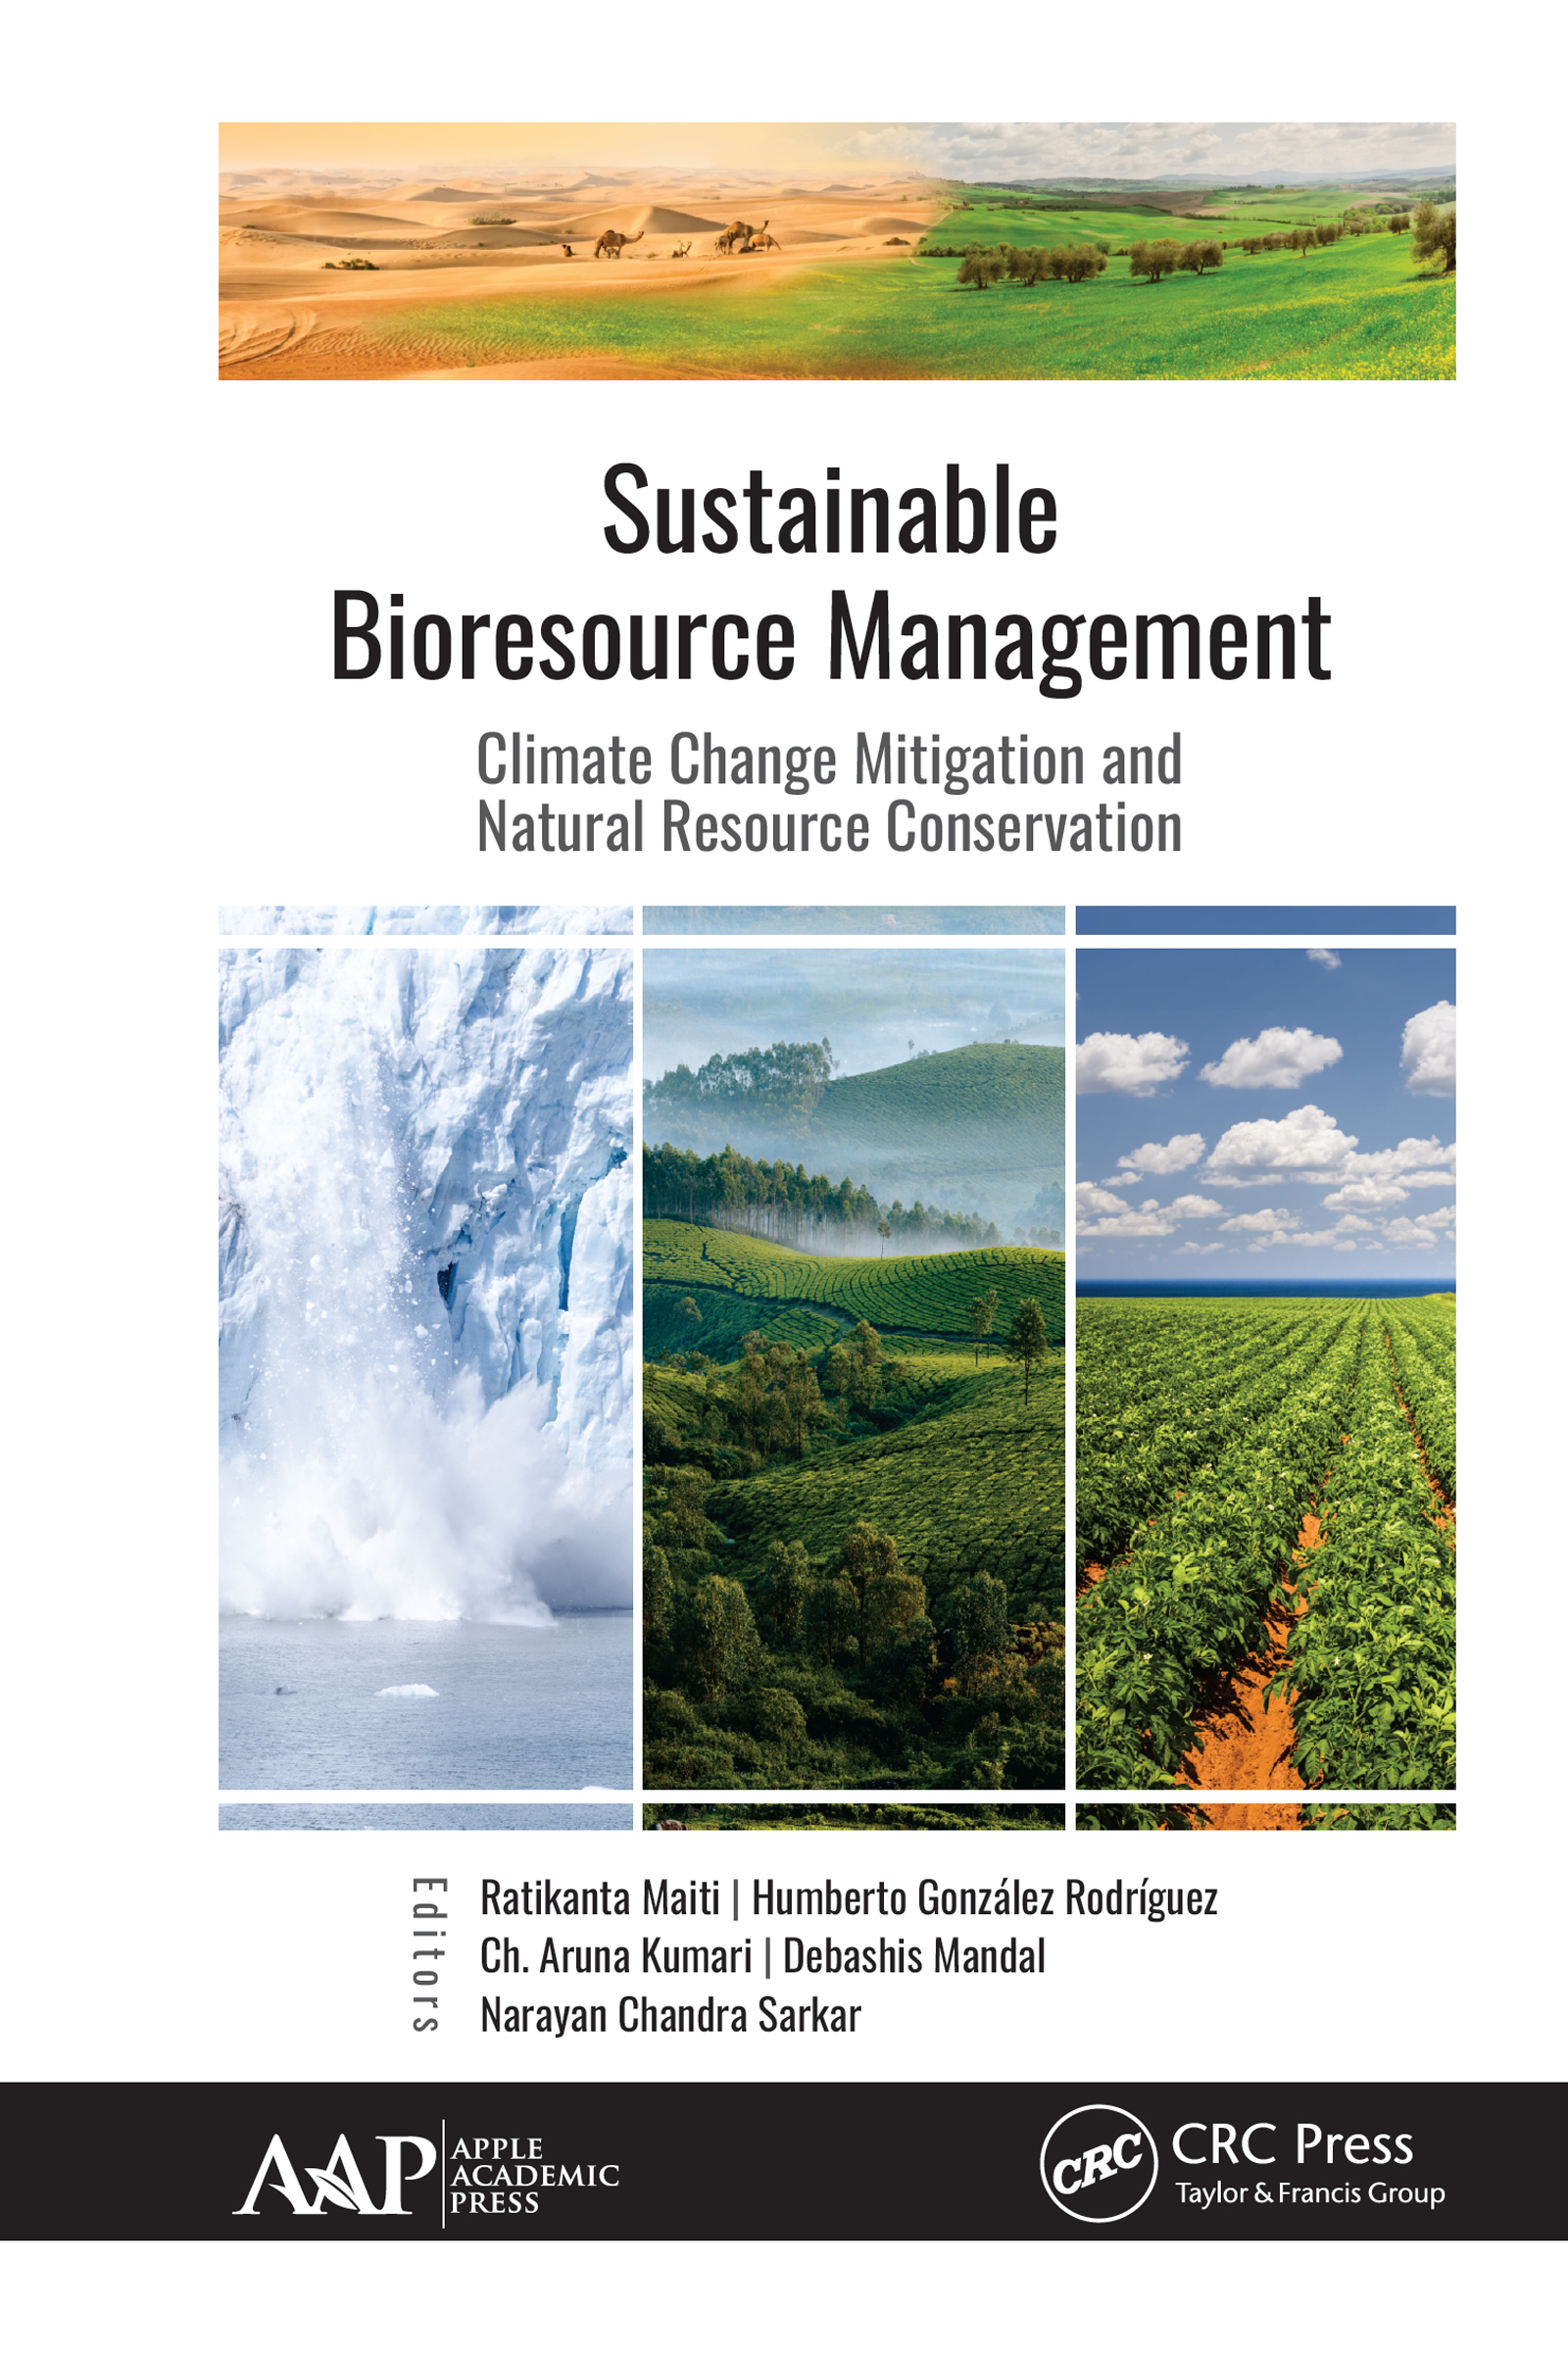 Sustainable Bioresource Management